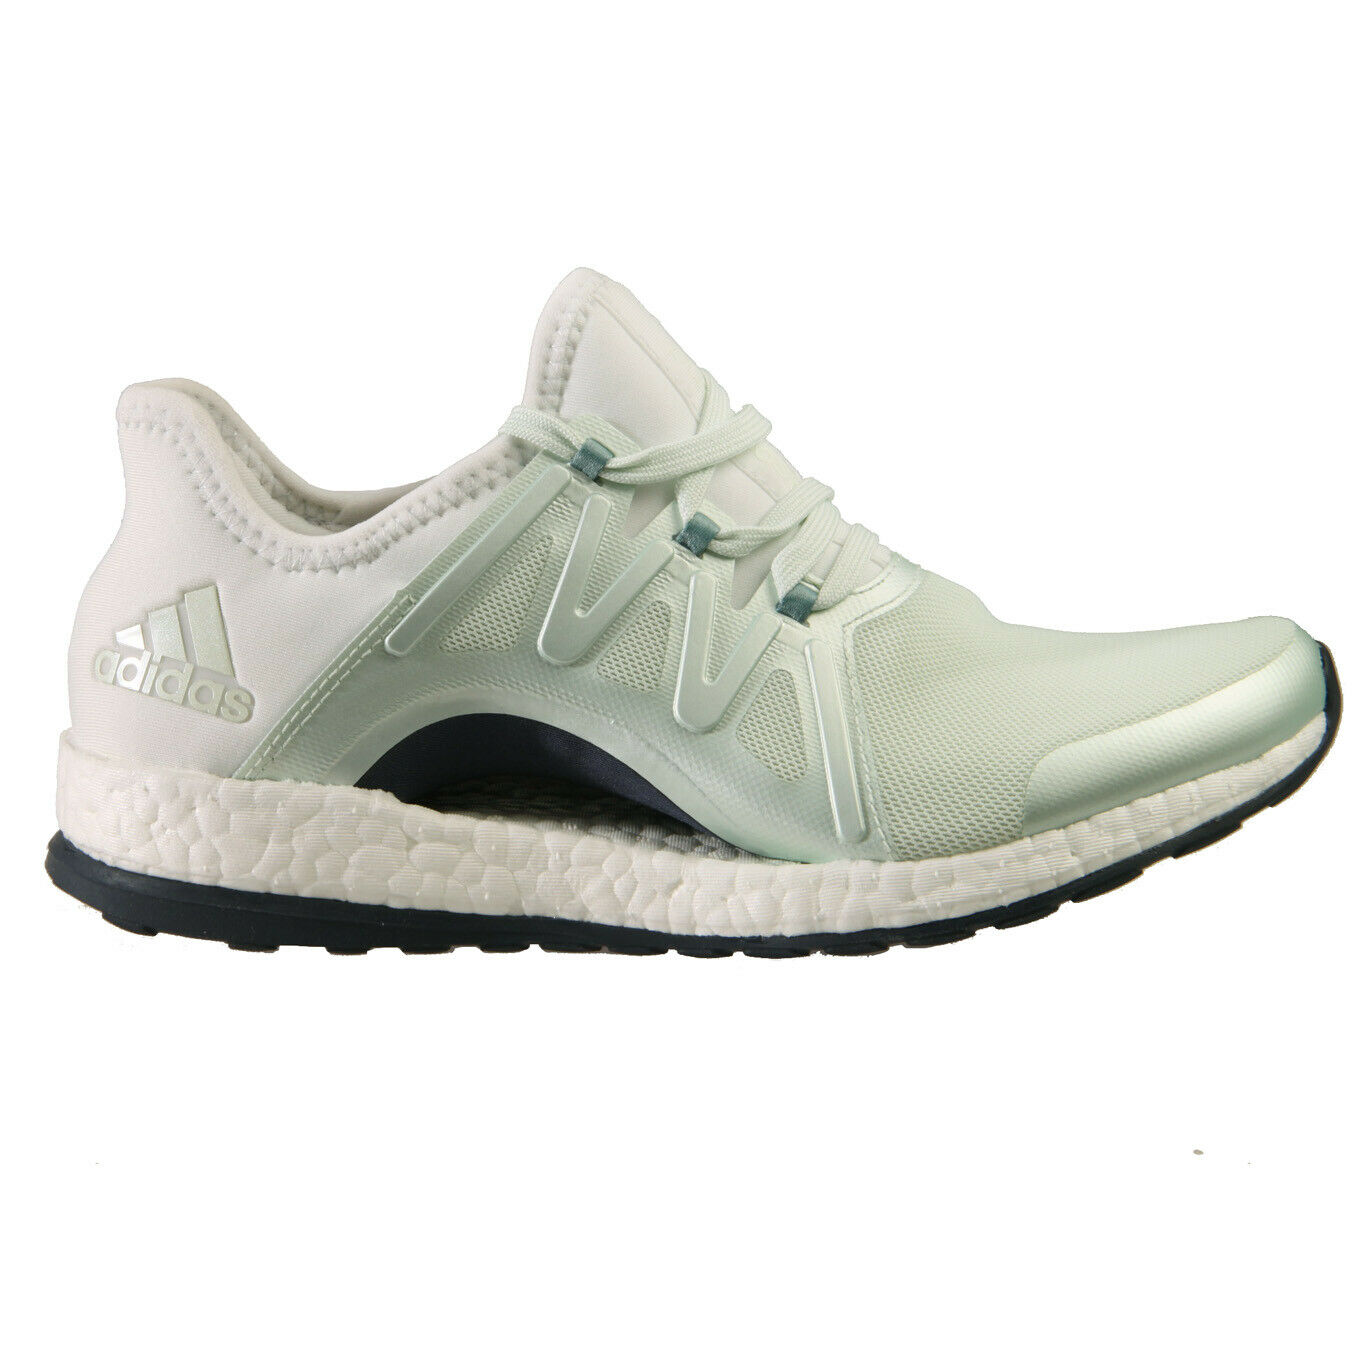 Adidas Pure Boost Xpose Womens BB1732 Linen Green Steel Running shoes Size 9